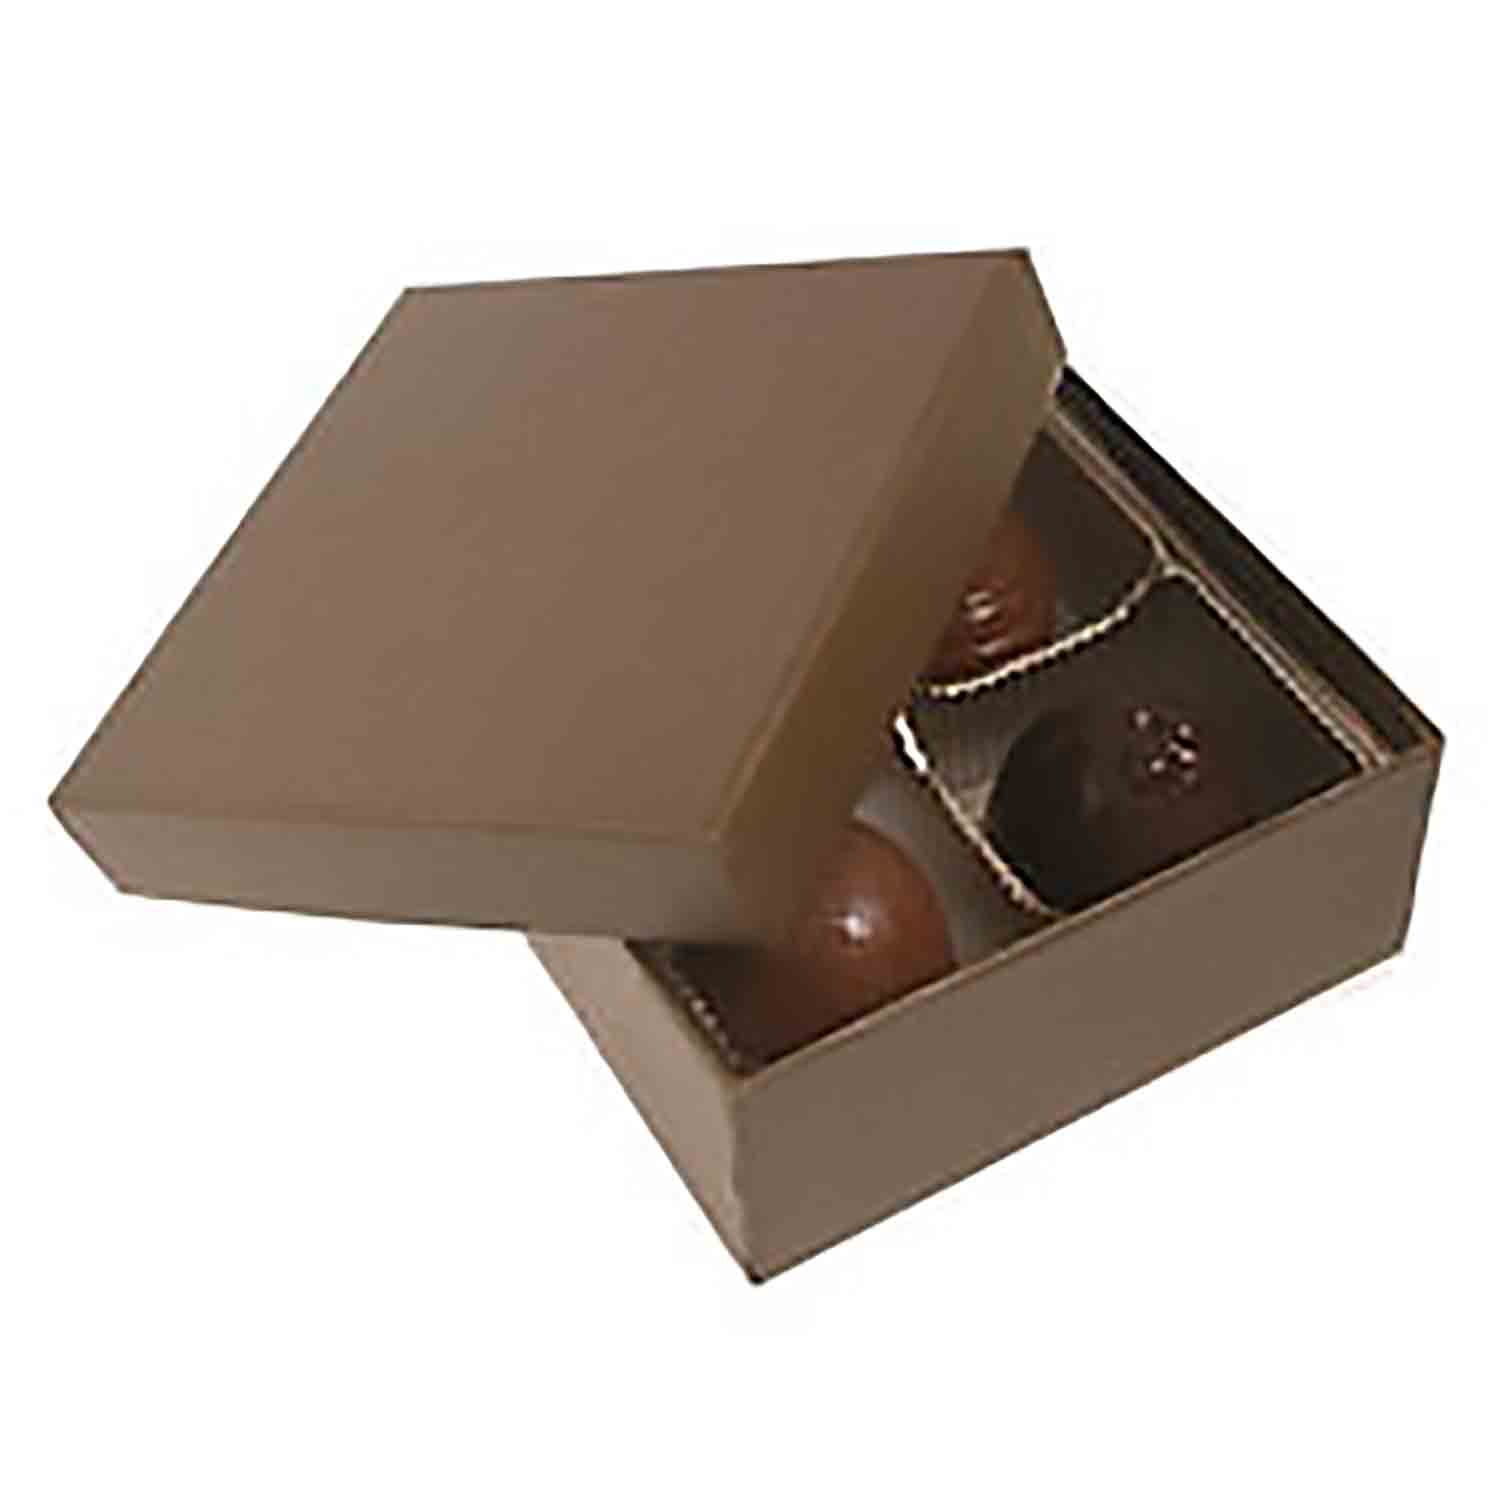 4 Pc. Chocolate Brown Candy Box